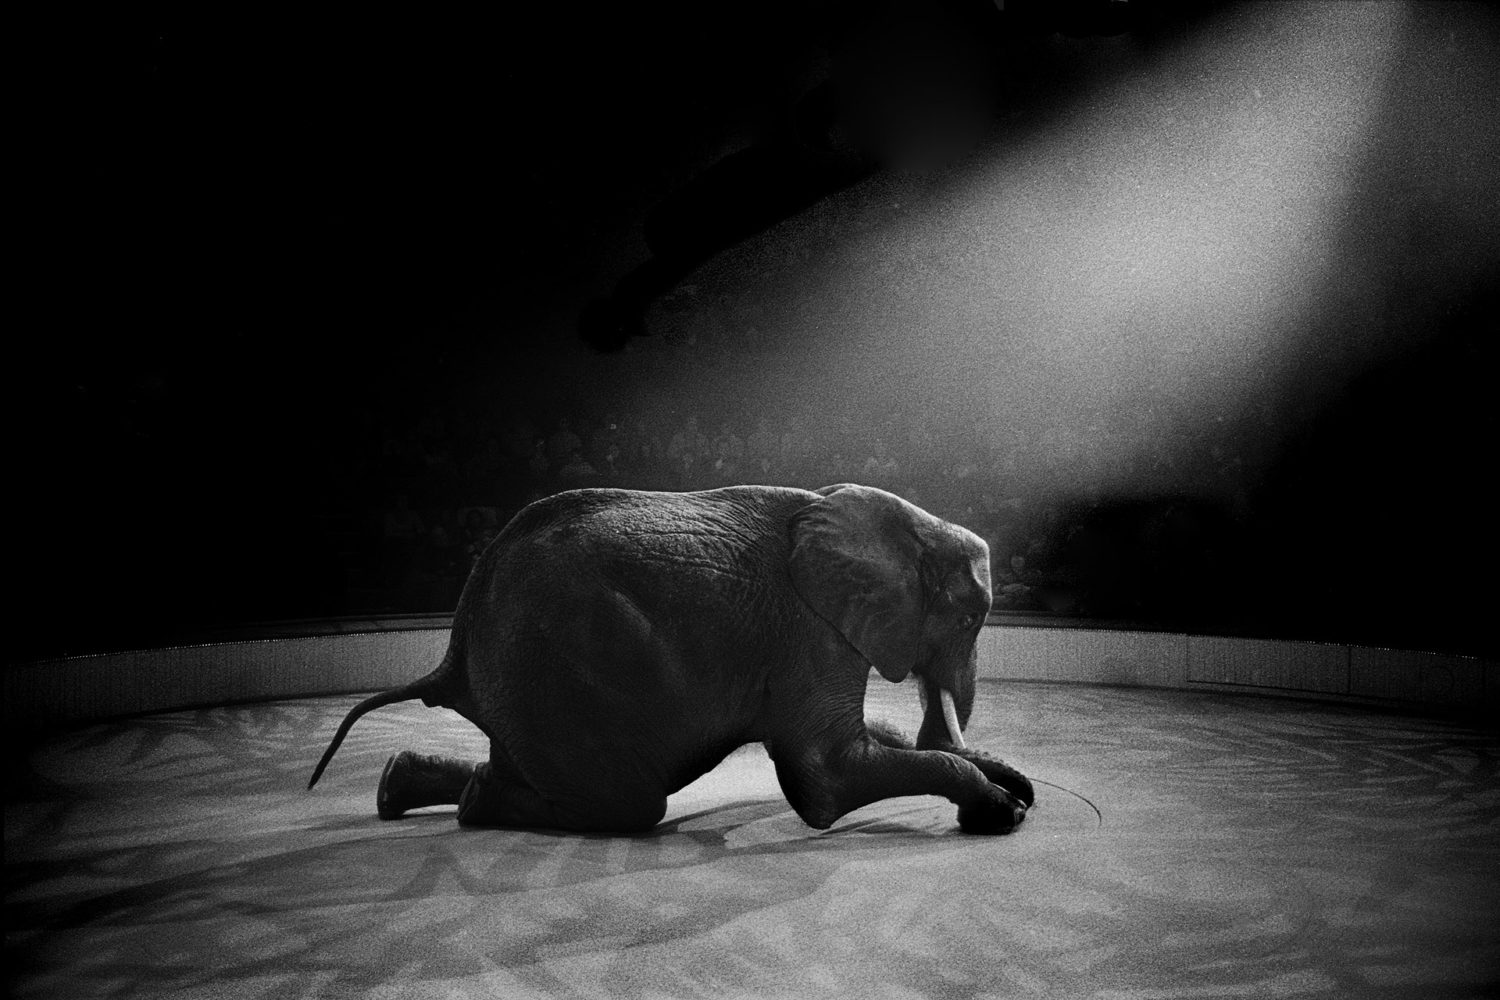 Robert Goldstein - 'Paris Circus'. Black and white - elephant kneeling down in a circus ring